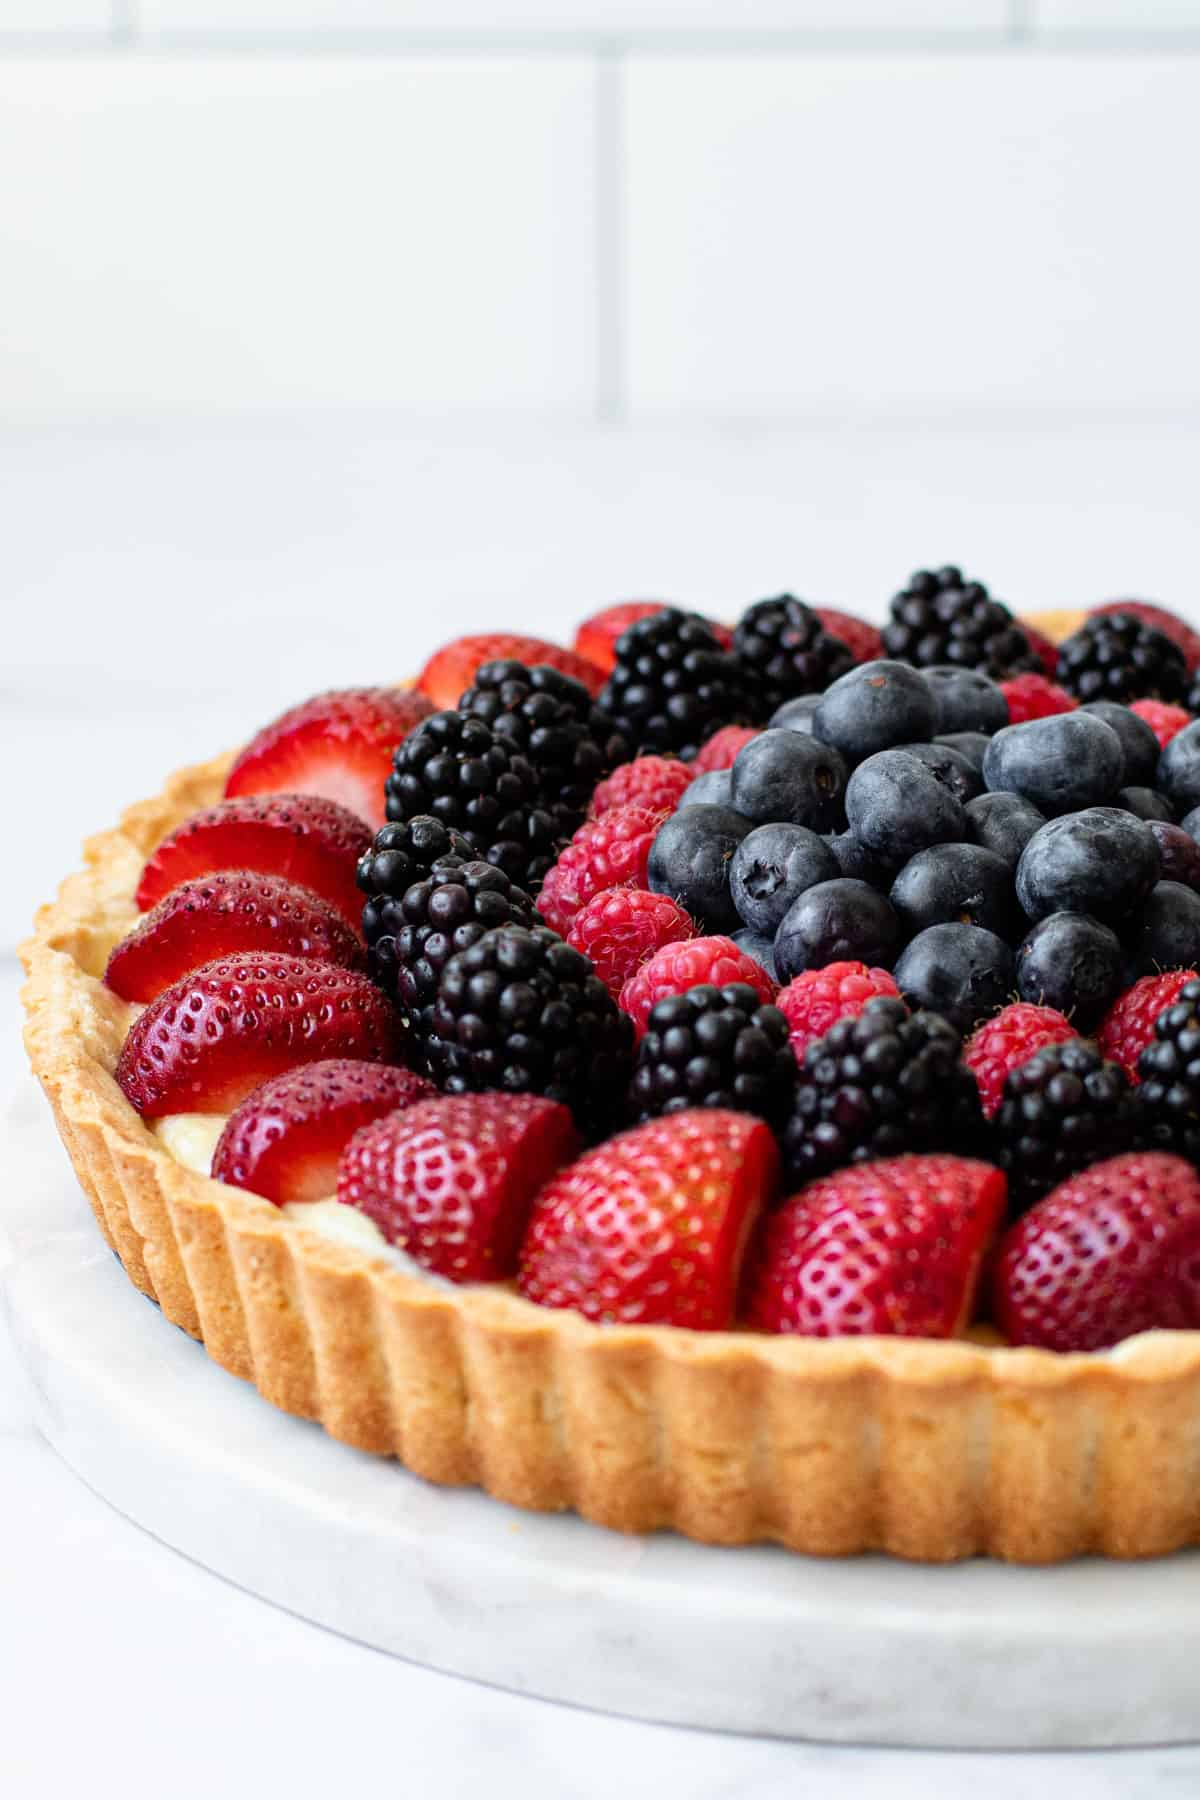 A side view of a classic fruit tart.